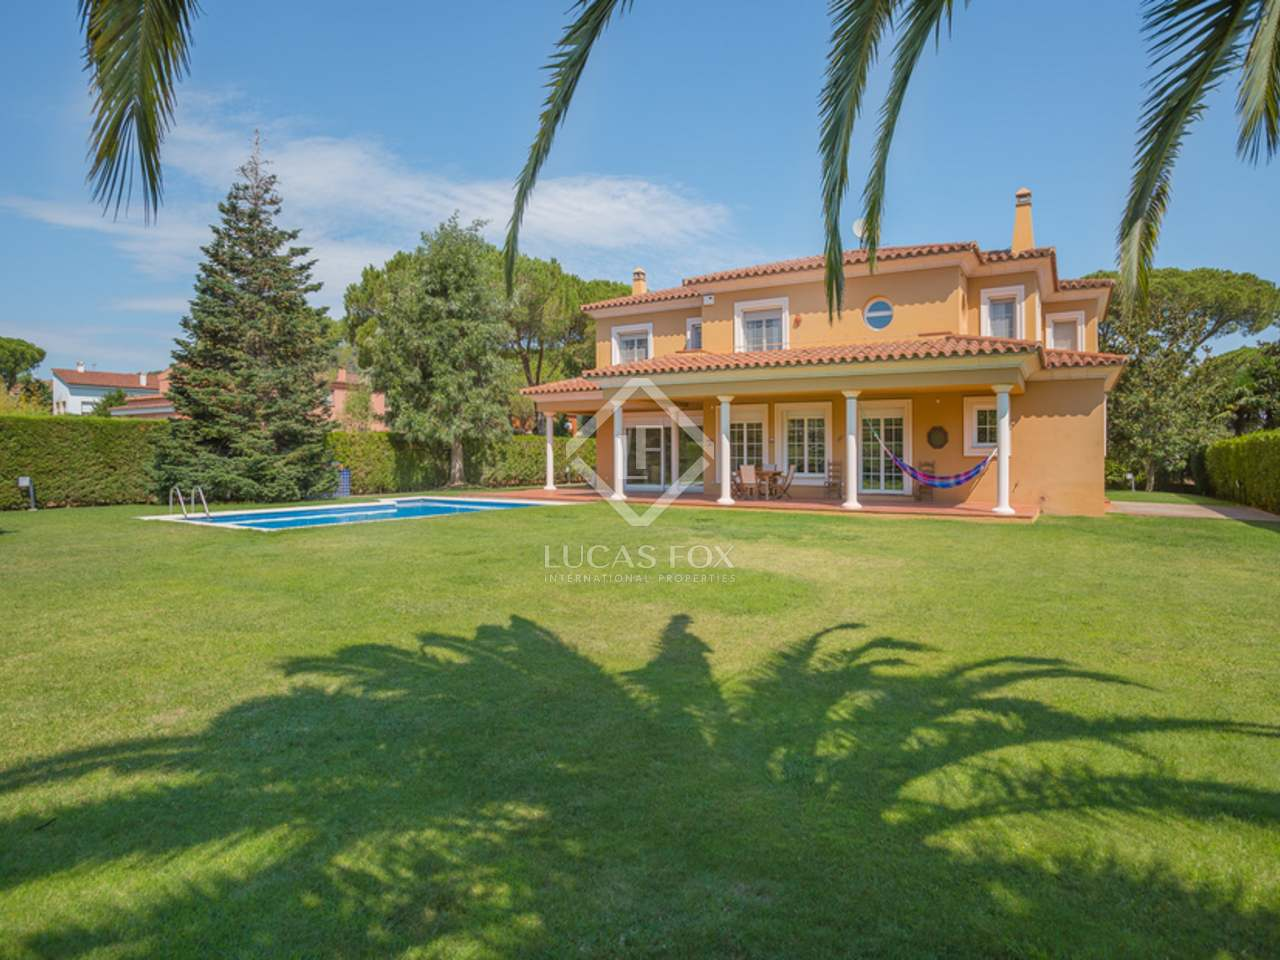 Wonderful family house for sale in montr s for Wonderful house